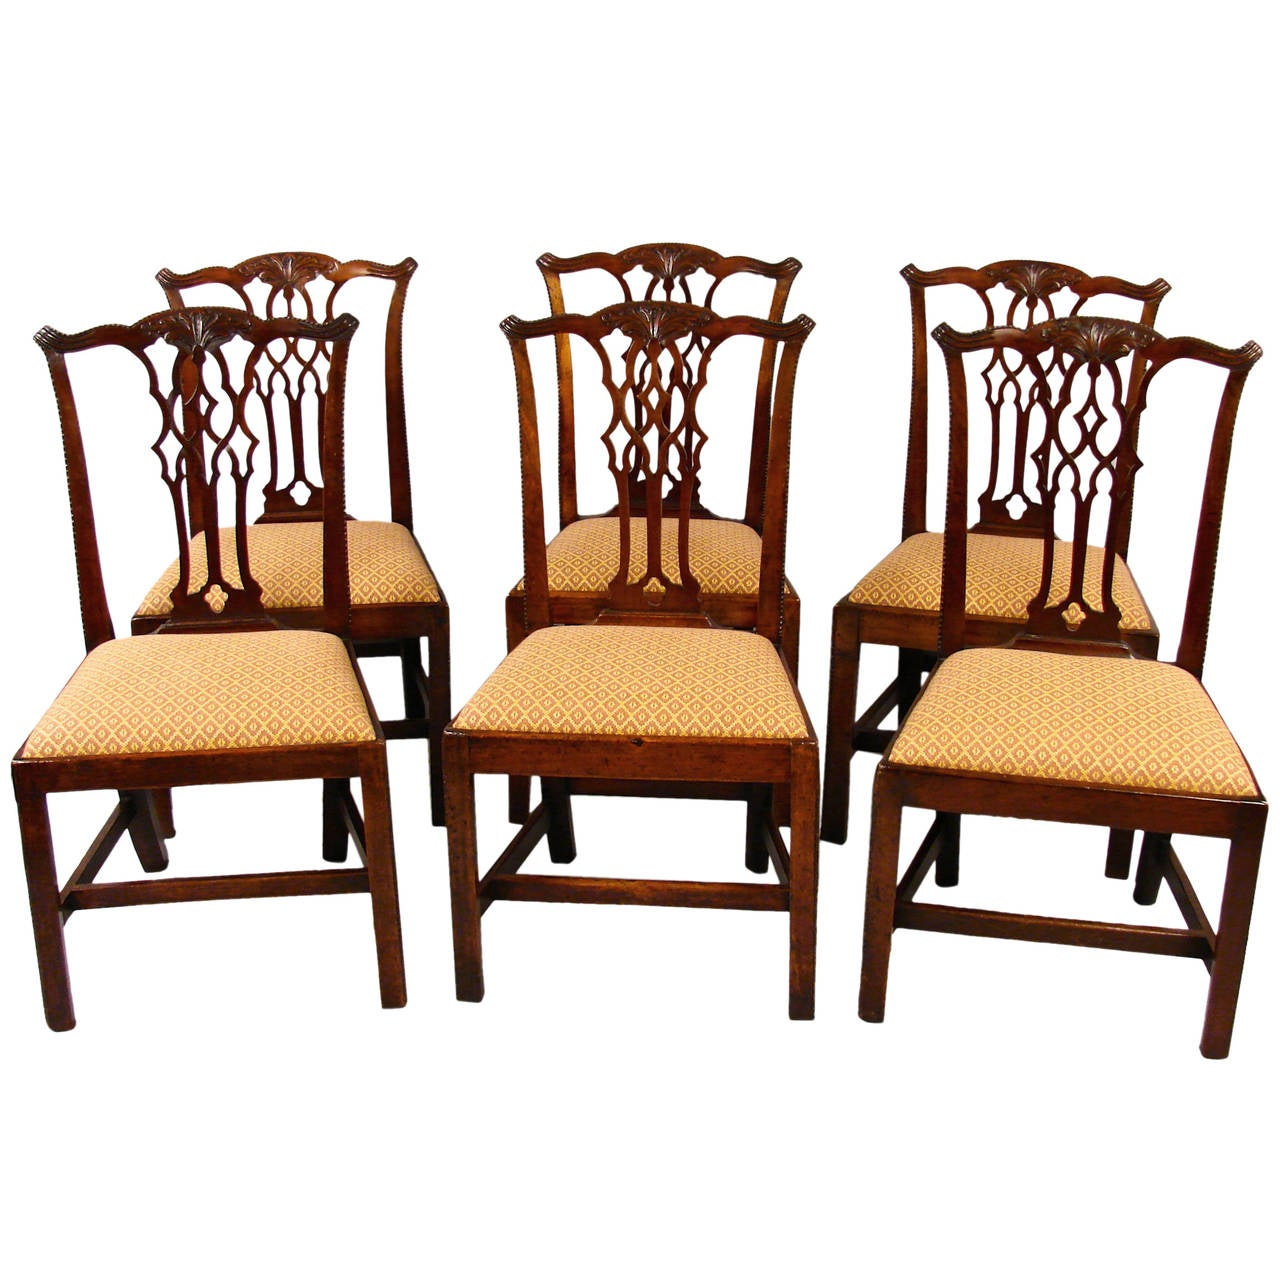 chippendale dining chair bergere chairs eight mahogany at 1stdibs